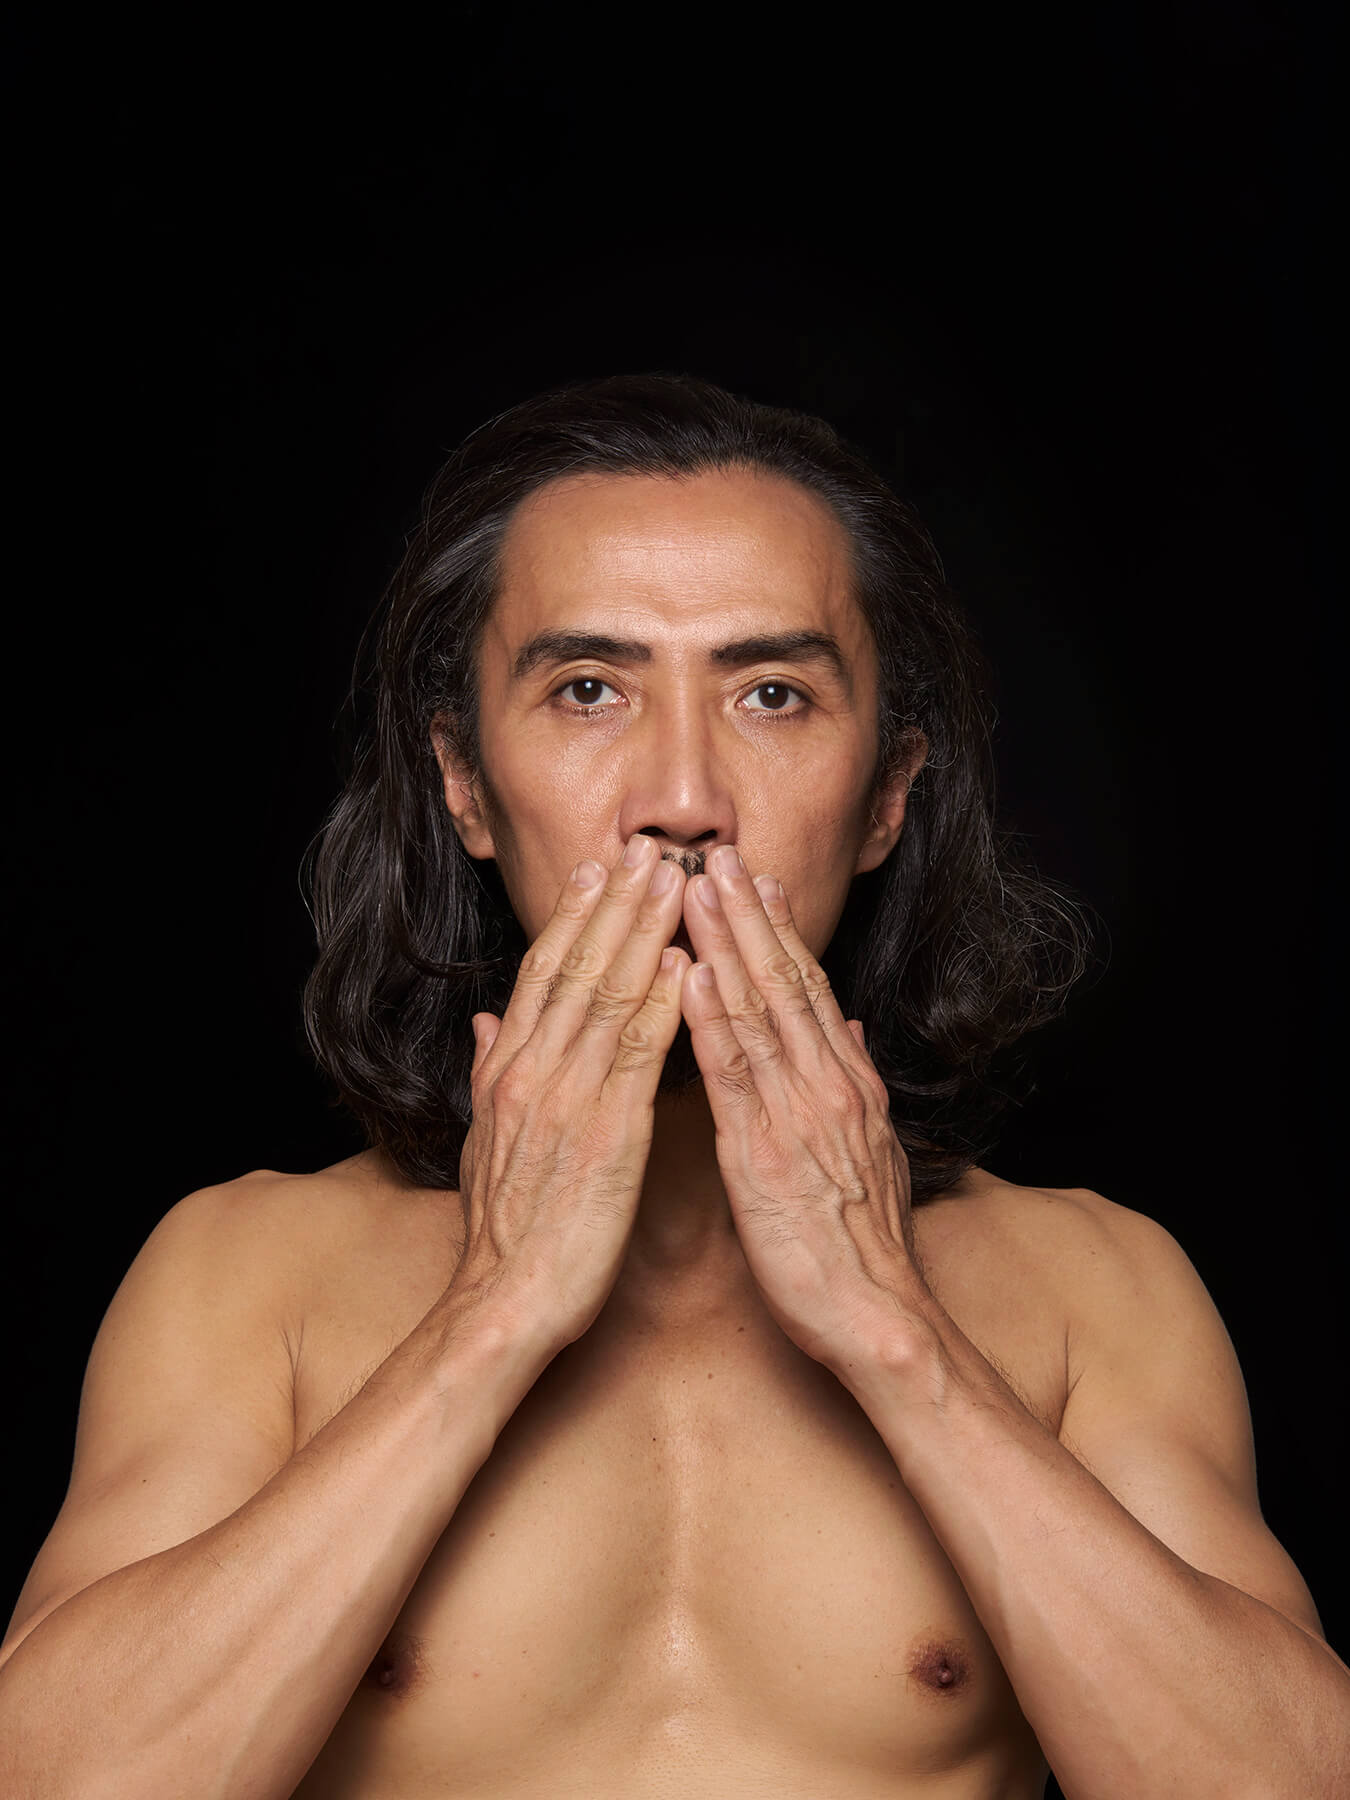 27 Feb 2018 Derong is photographed topless, covering his mouth